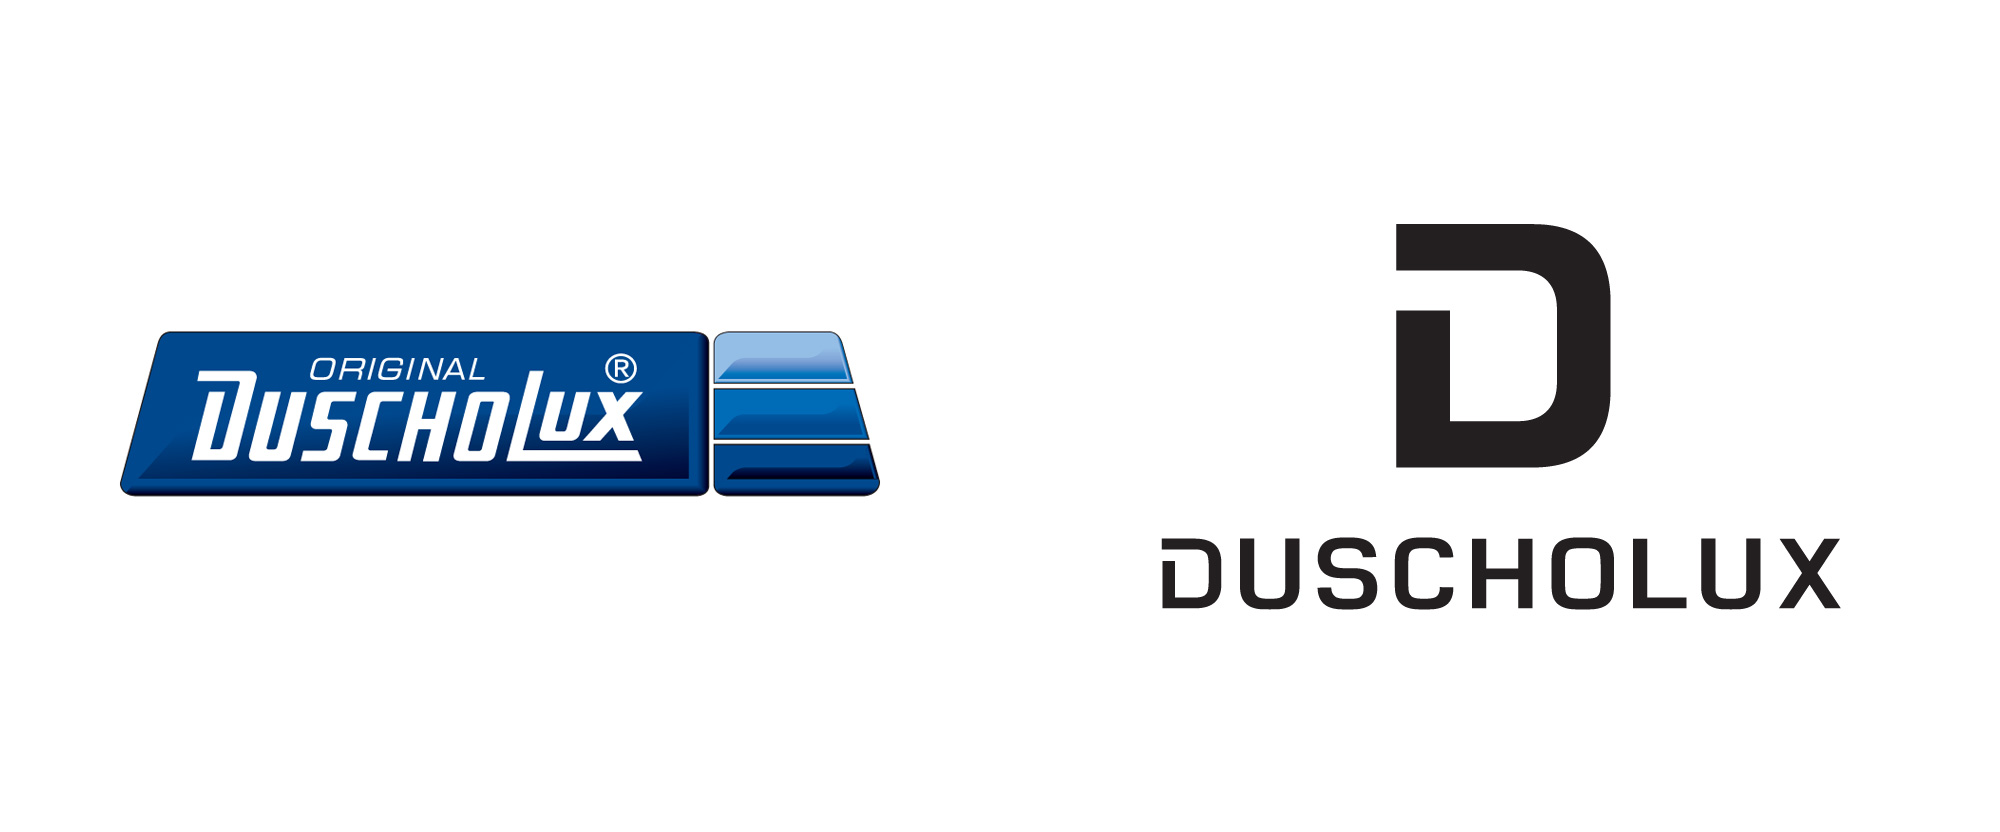 New Logo and Identity for Duscholux by Vetica Group